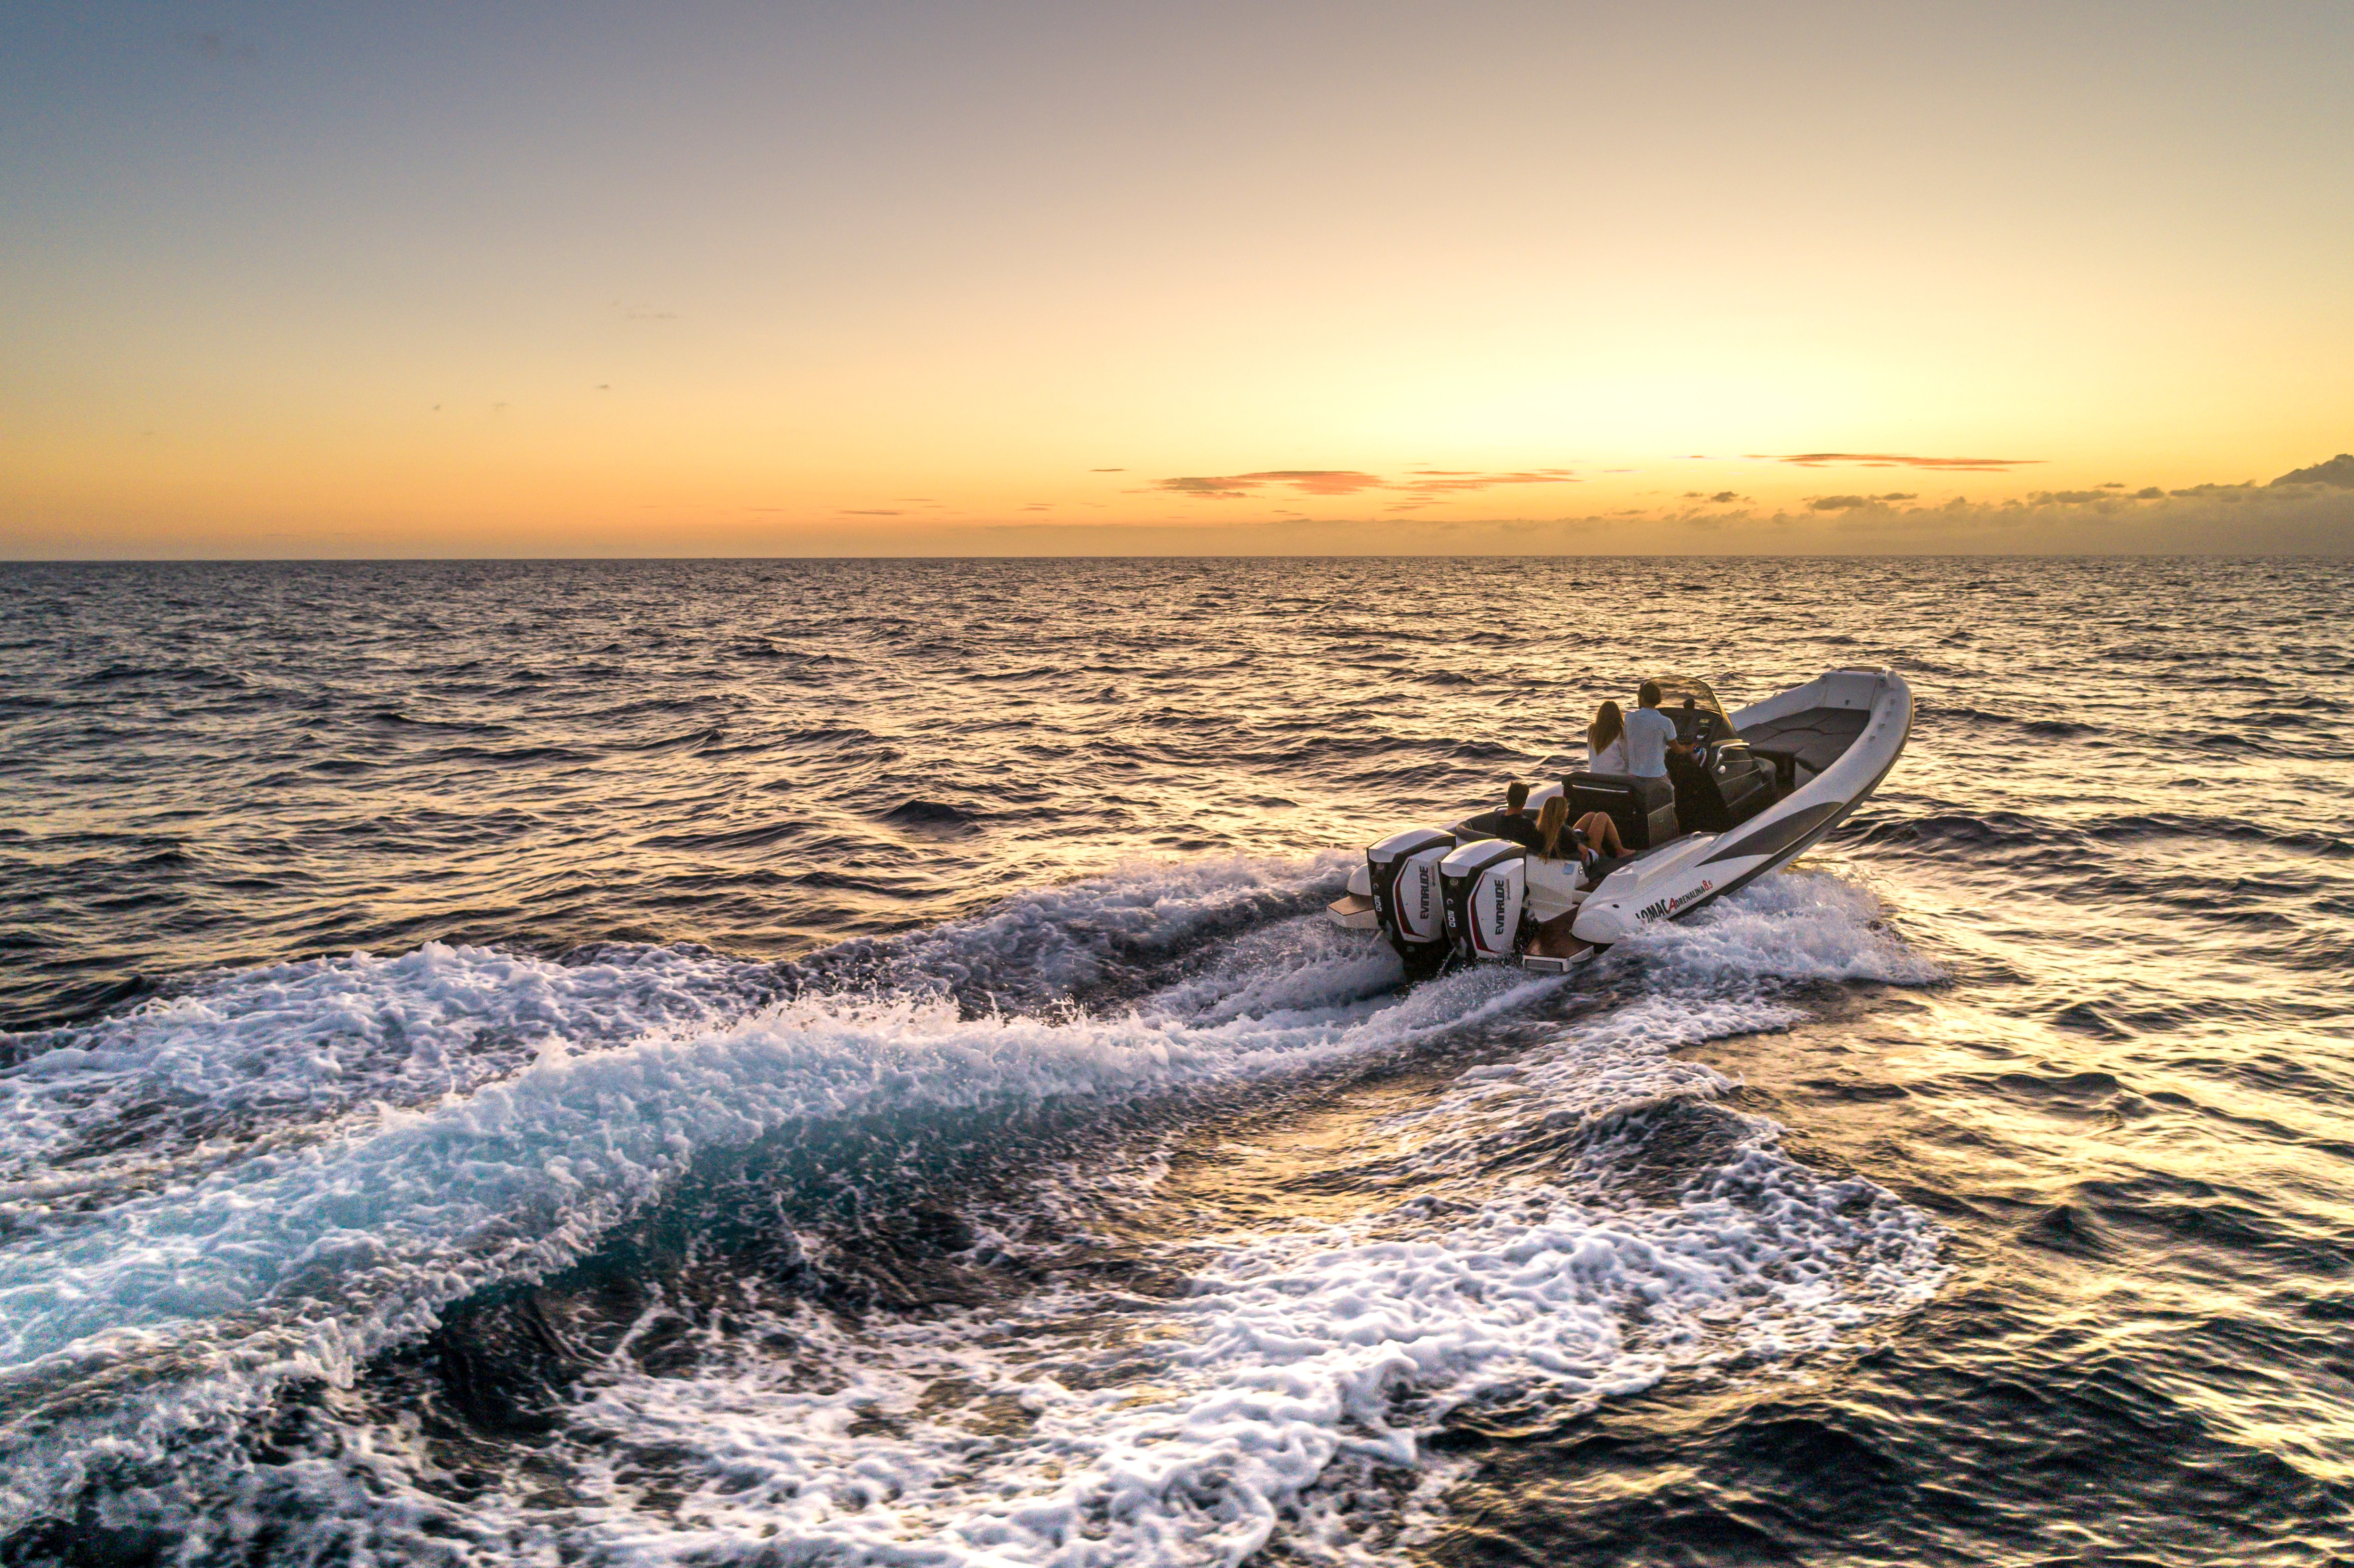 Wide angle shot of a boat yielding an Evinrude motor diving towards the sunset